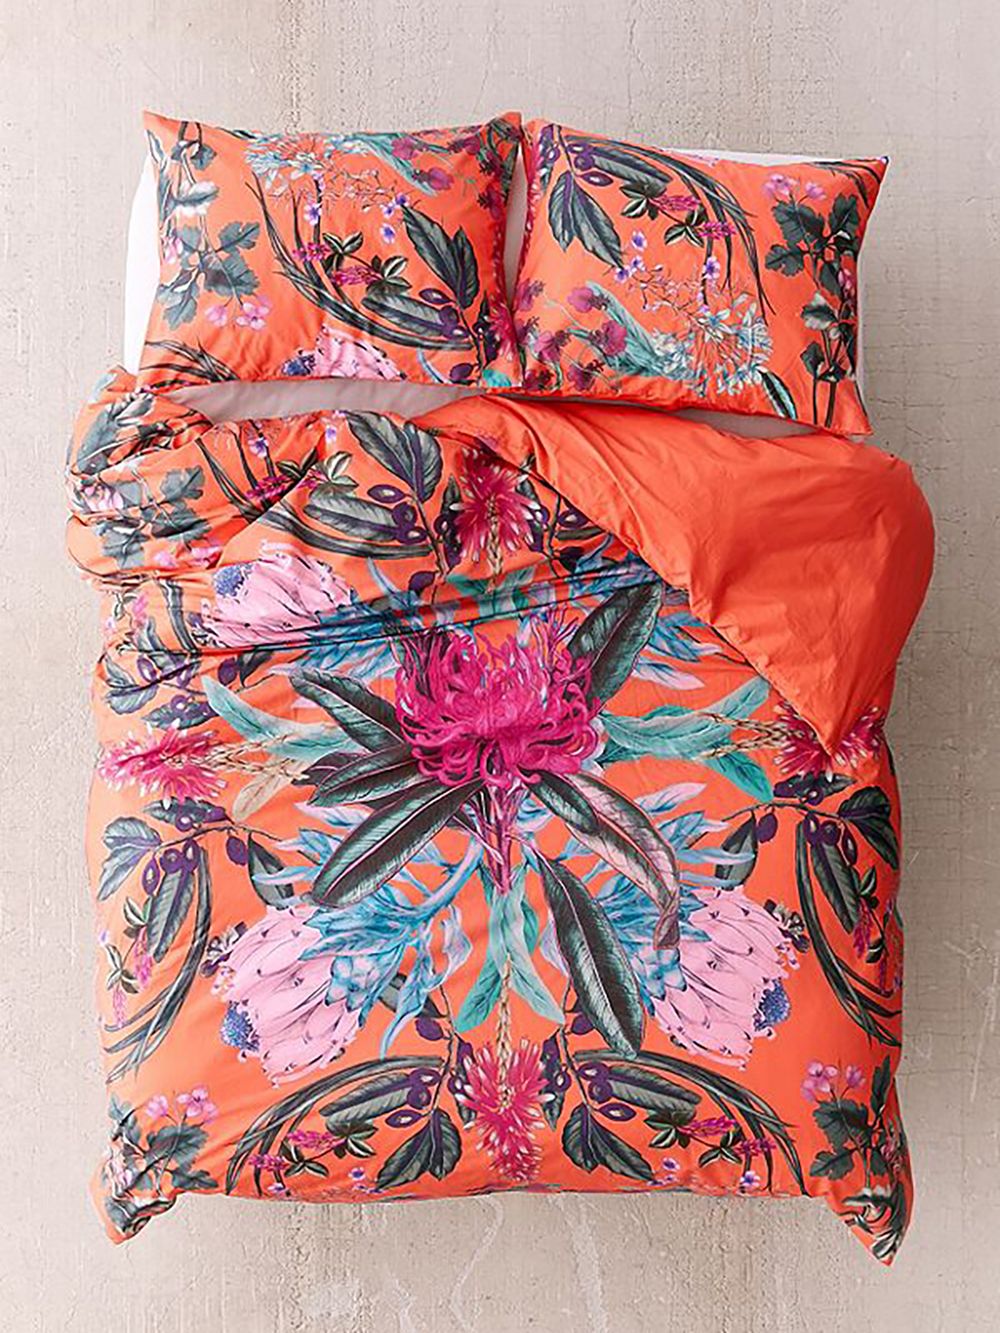 Elle floral scarf duvet cover from urban outfitters - Tropical bedroom- Transform your home into a tropical paradise | Aliz's Wonderland